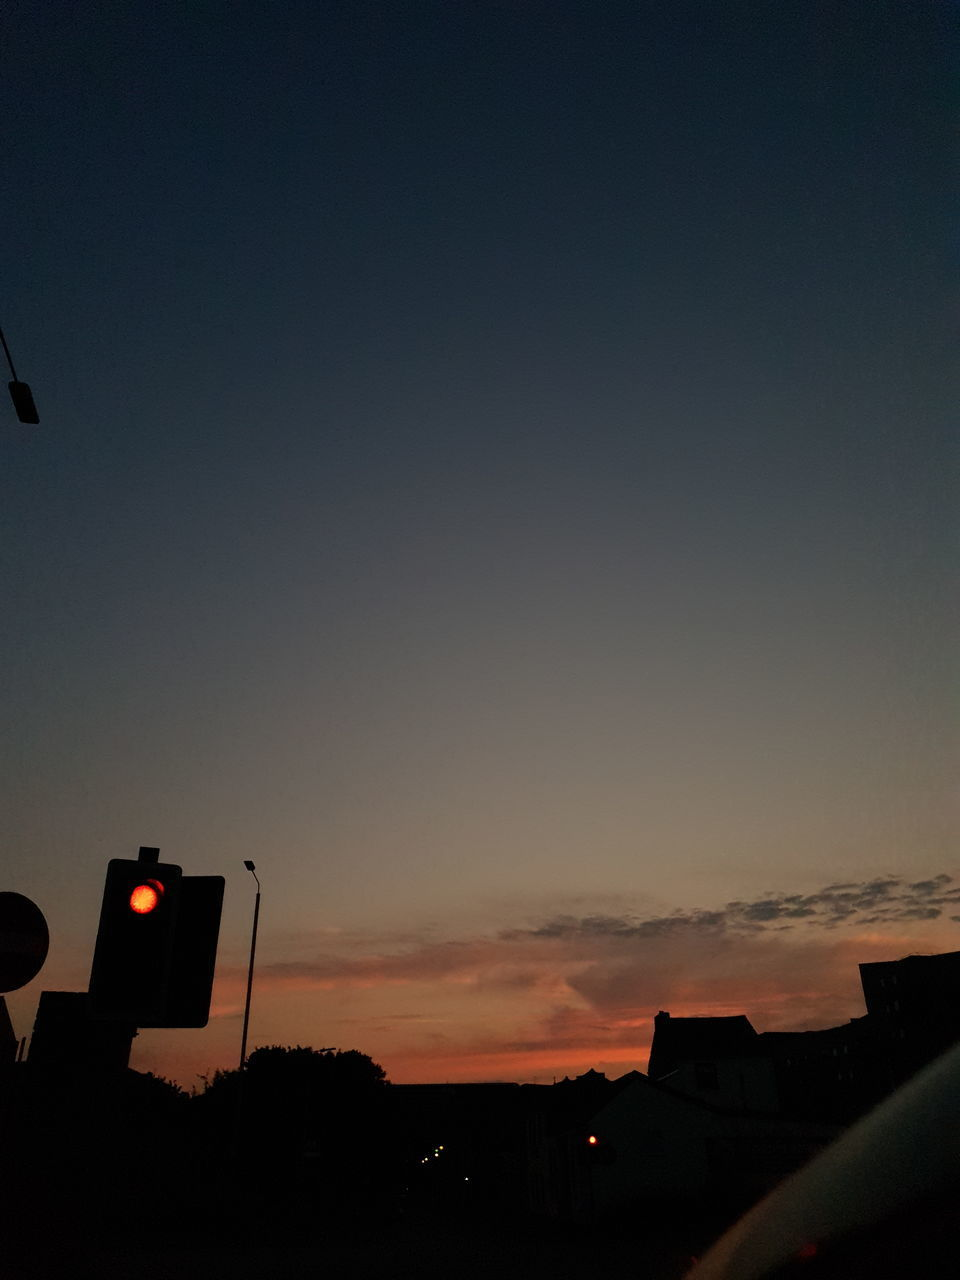 SILHOUETTE OF ROAD AT DUSK